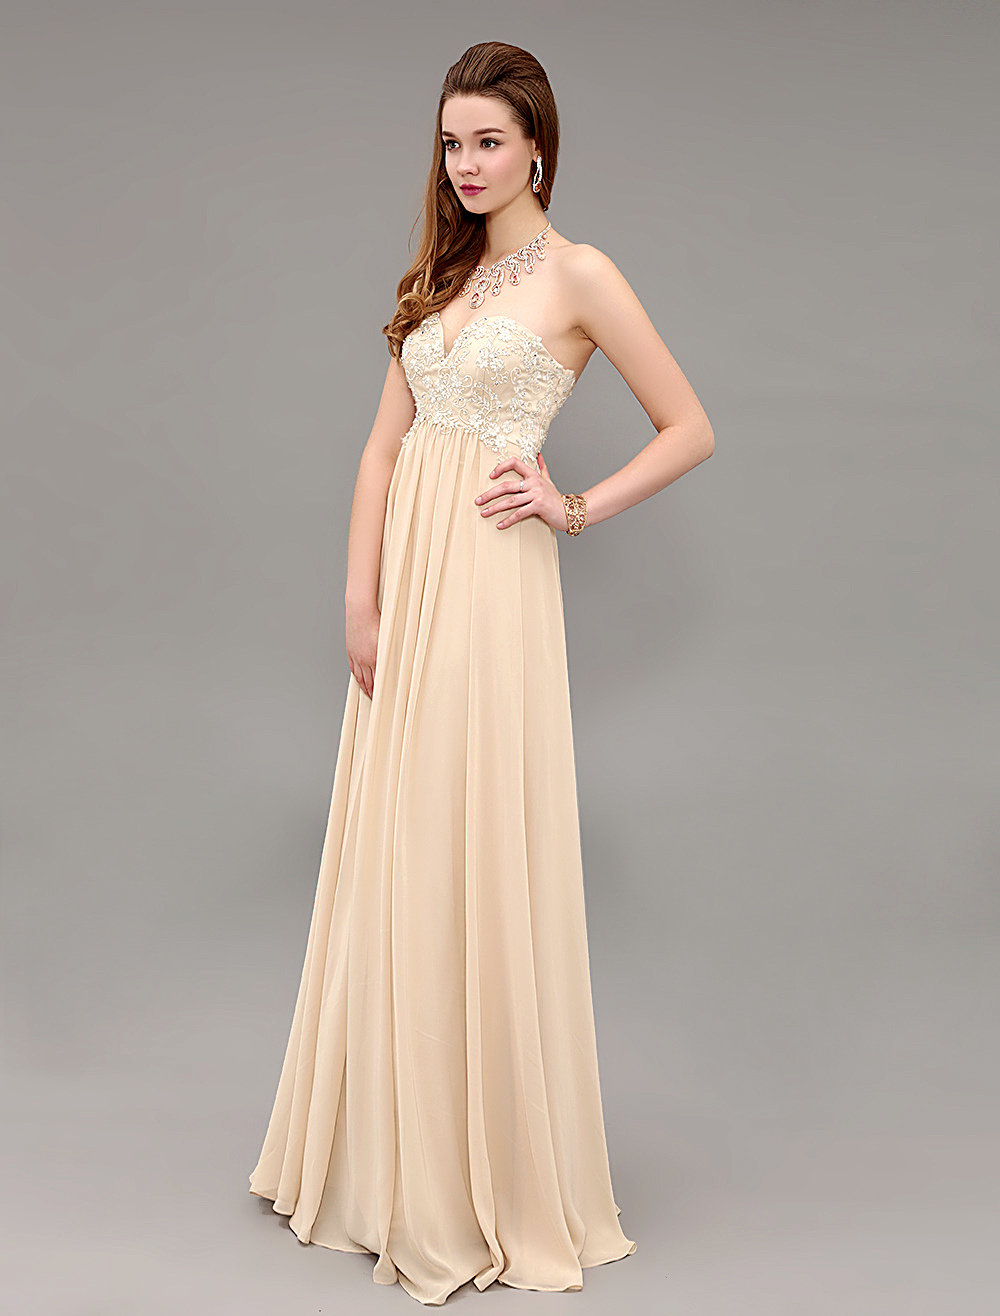 Champagne Chiffon Floor Length Evening Dress With Applique Bodice